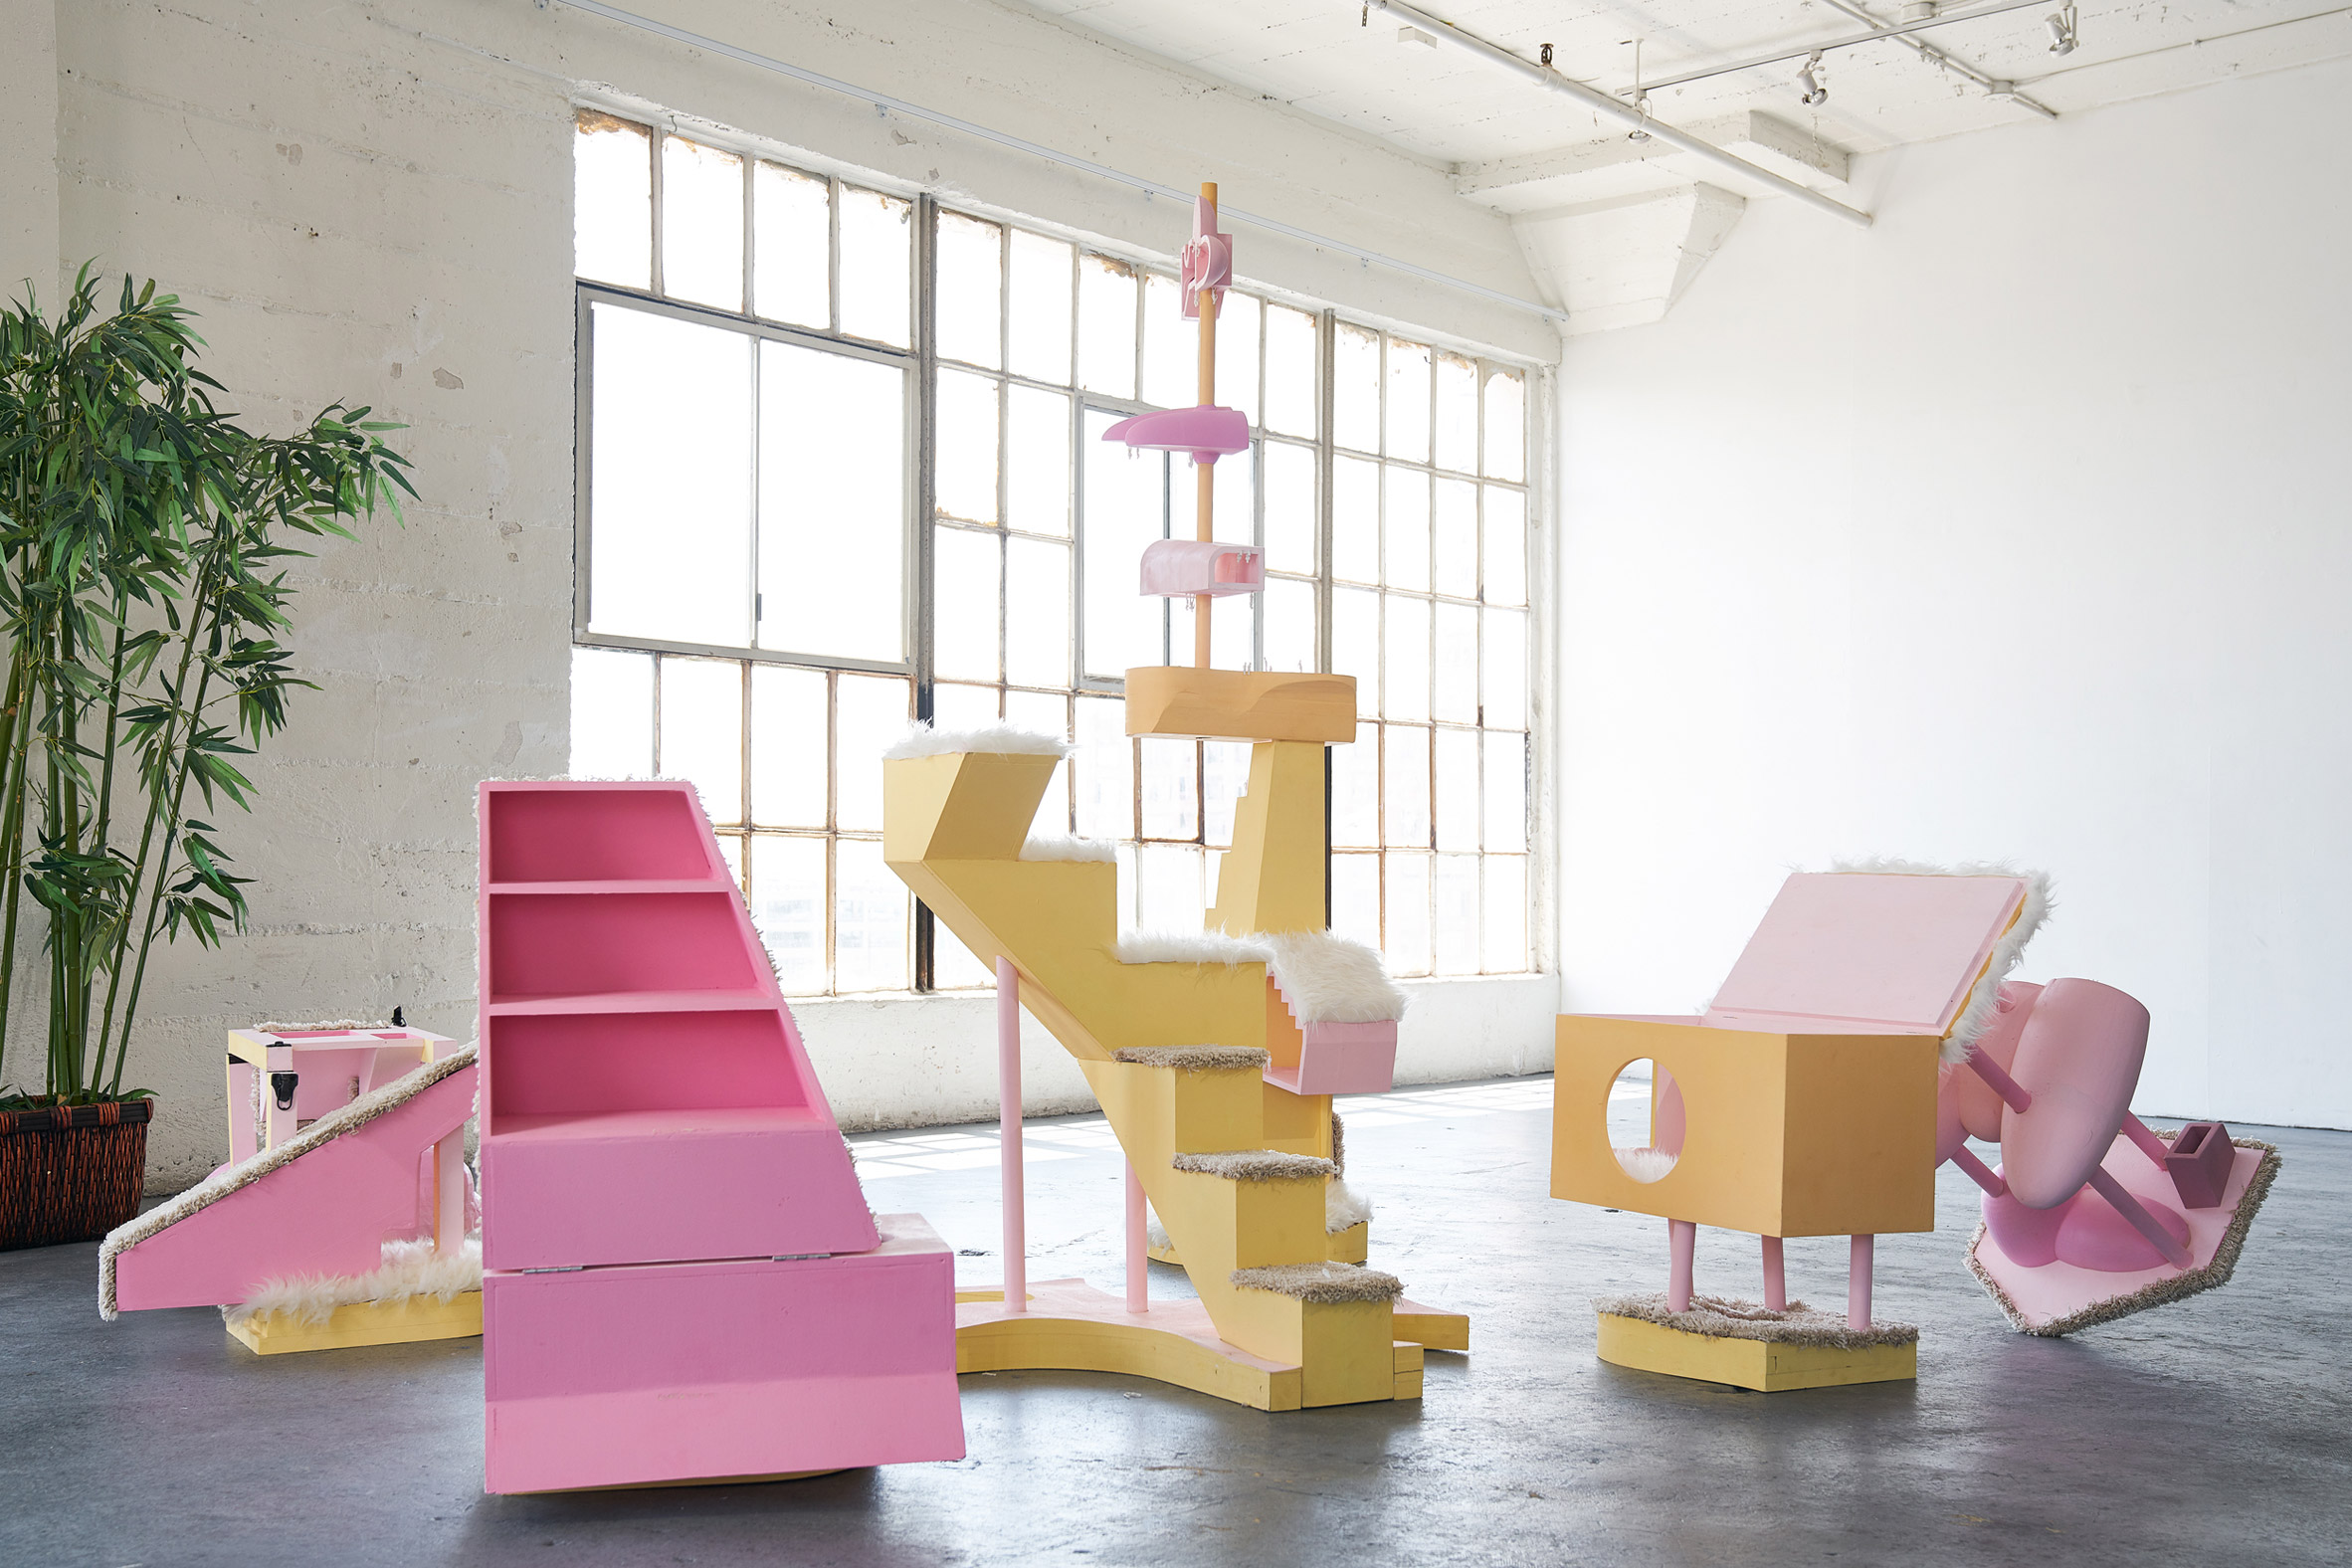 Architectural Voltron: Cats and Socks by Bureau Spectacular for P.O.D.System Architecture